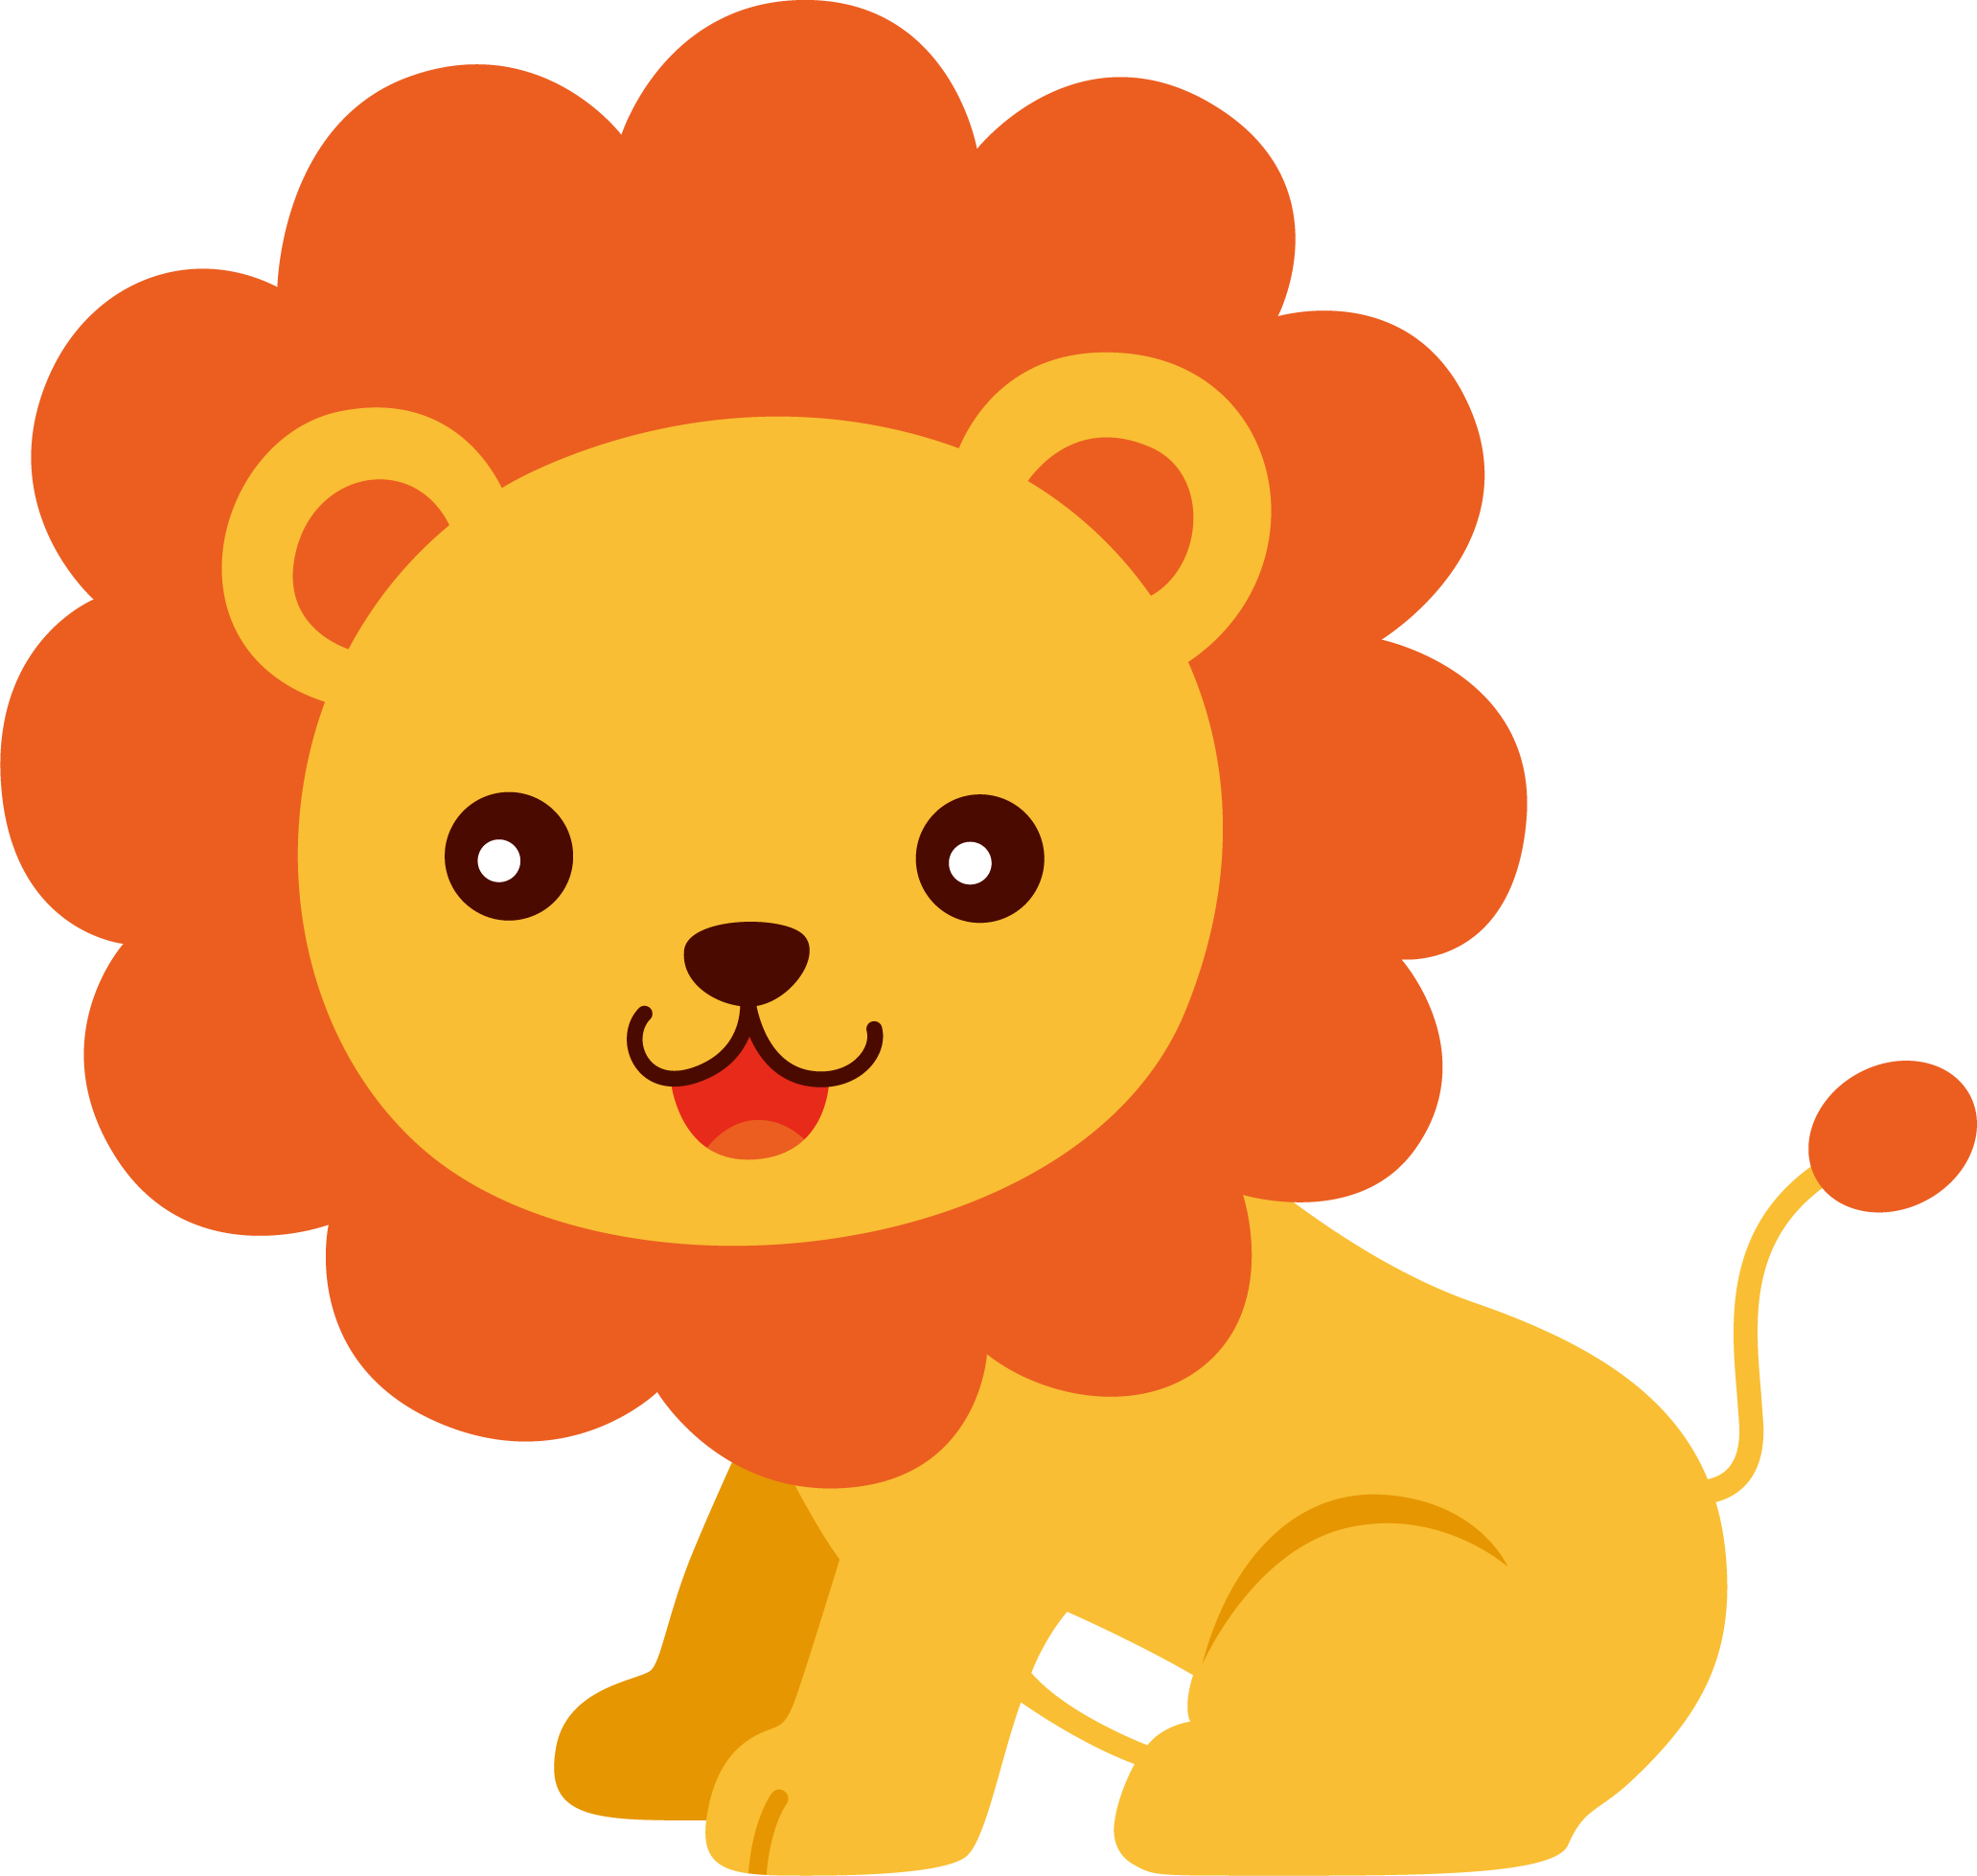 For download images . Free clipart lion